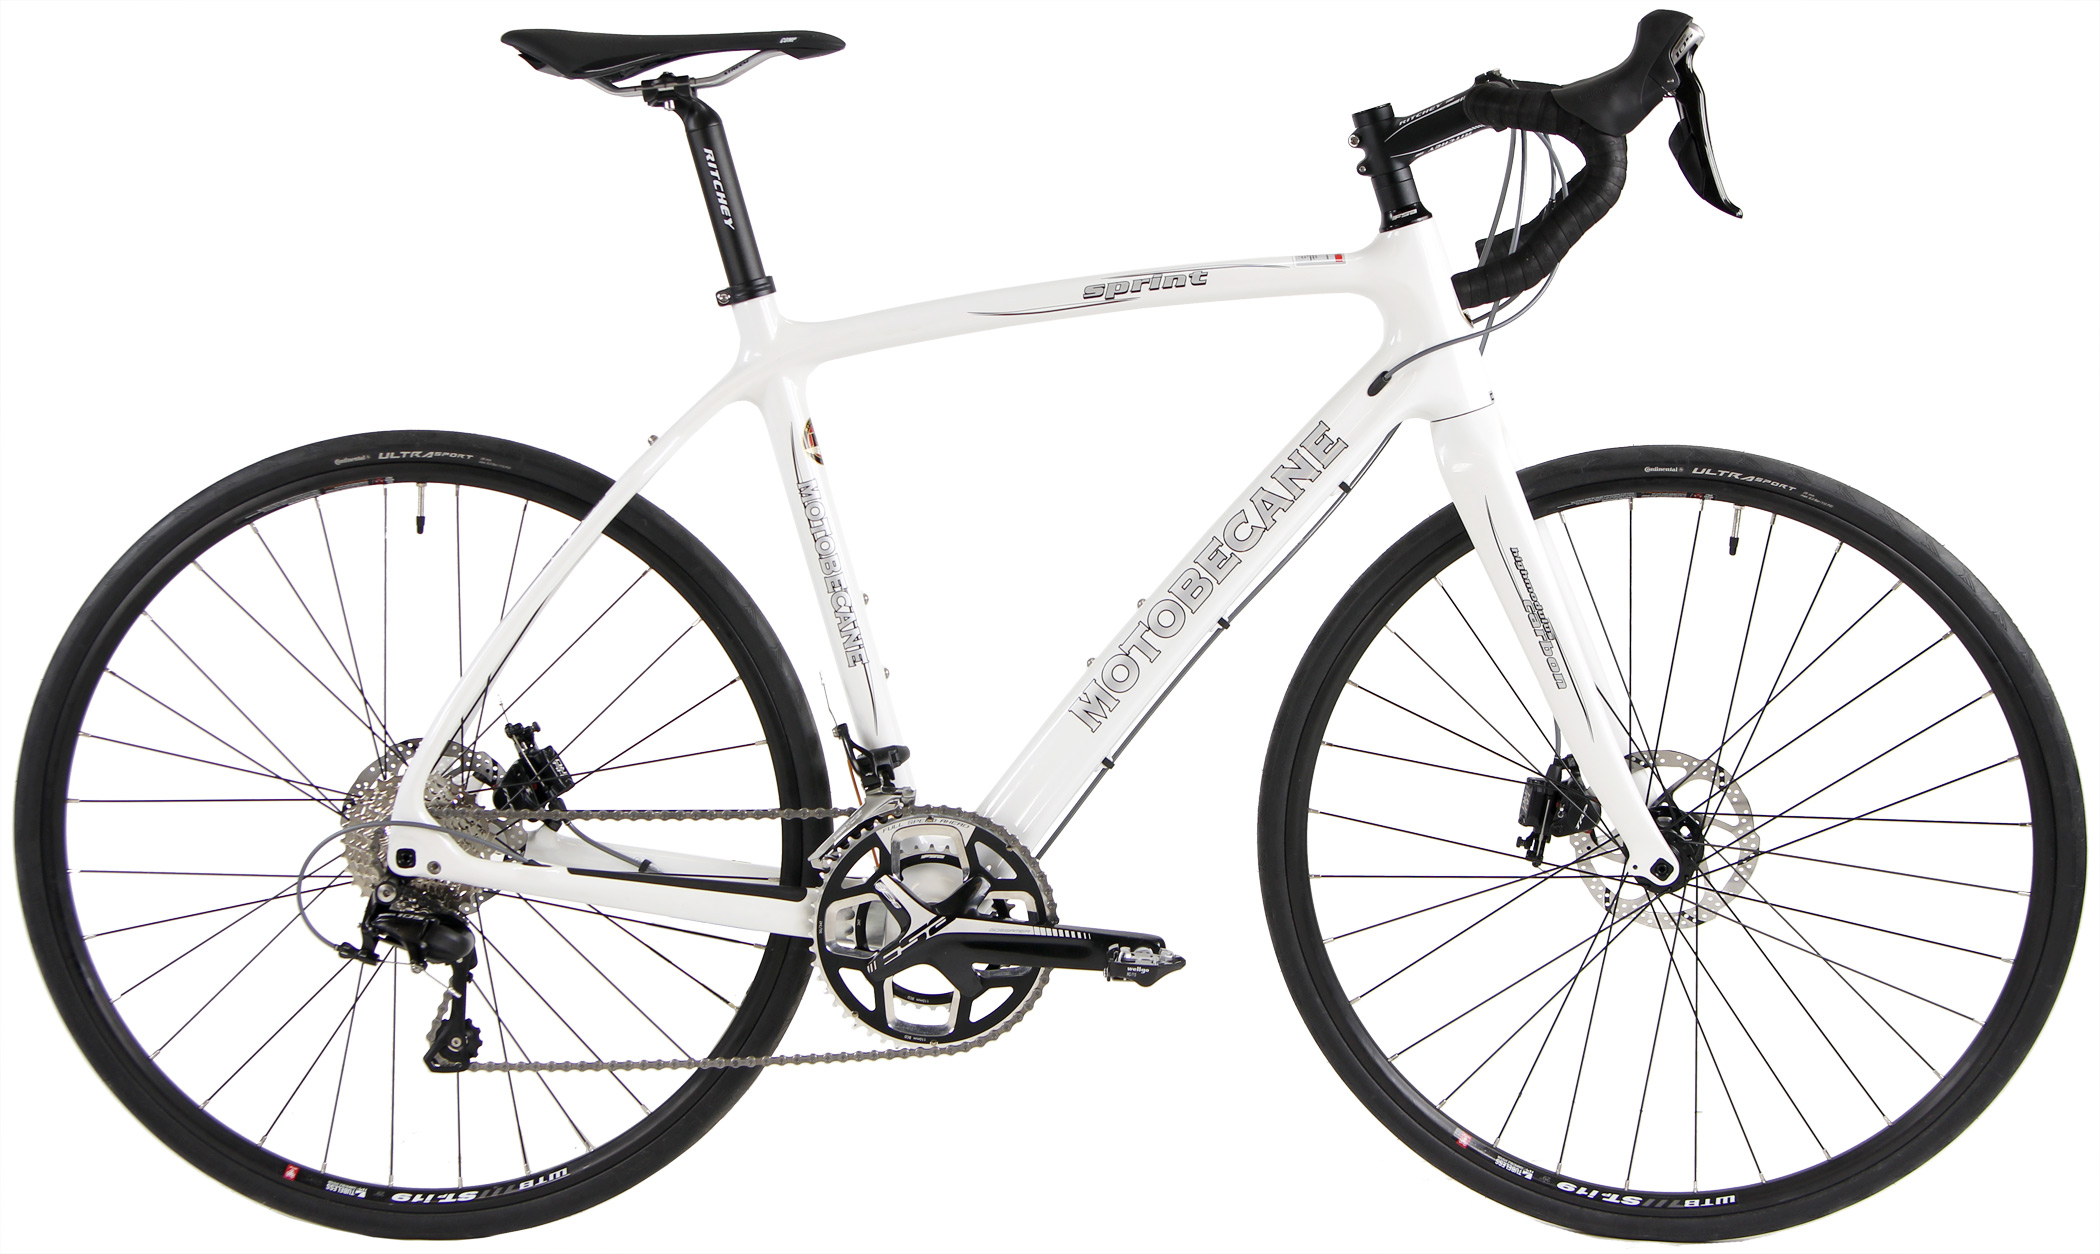 Bikes Motobecane Sprint CF Disc Pro Carbon Fiber Disc Brake Road Bike Ultegra Equipped Image